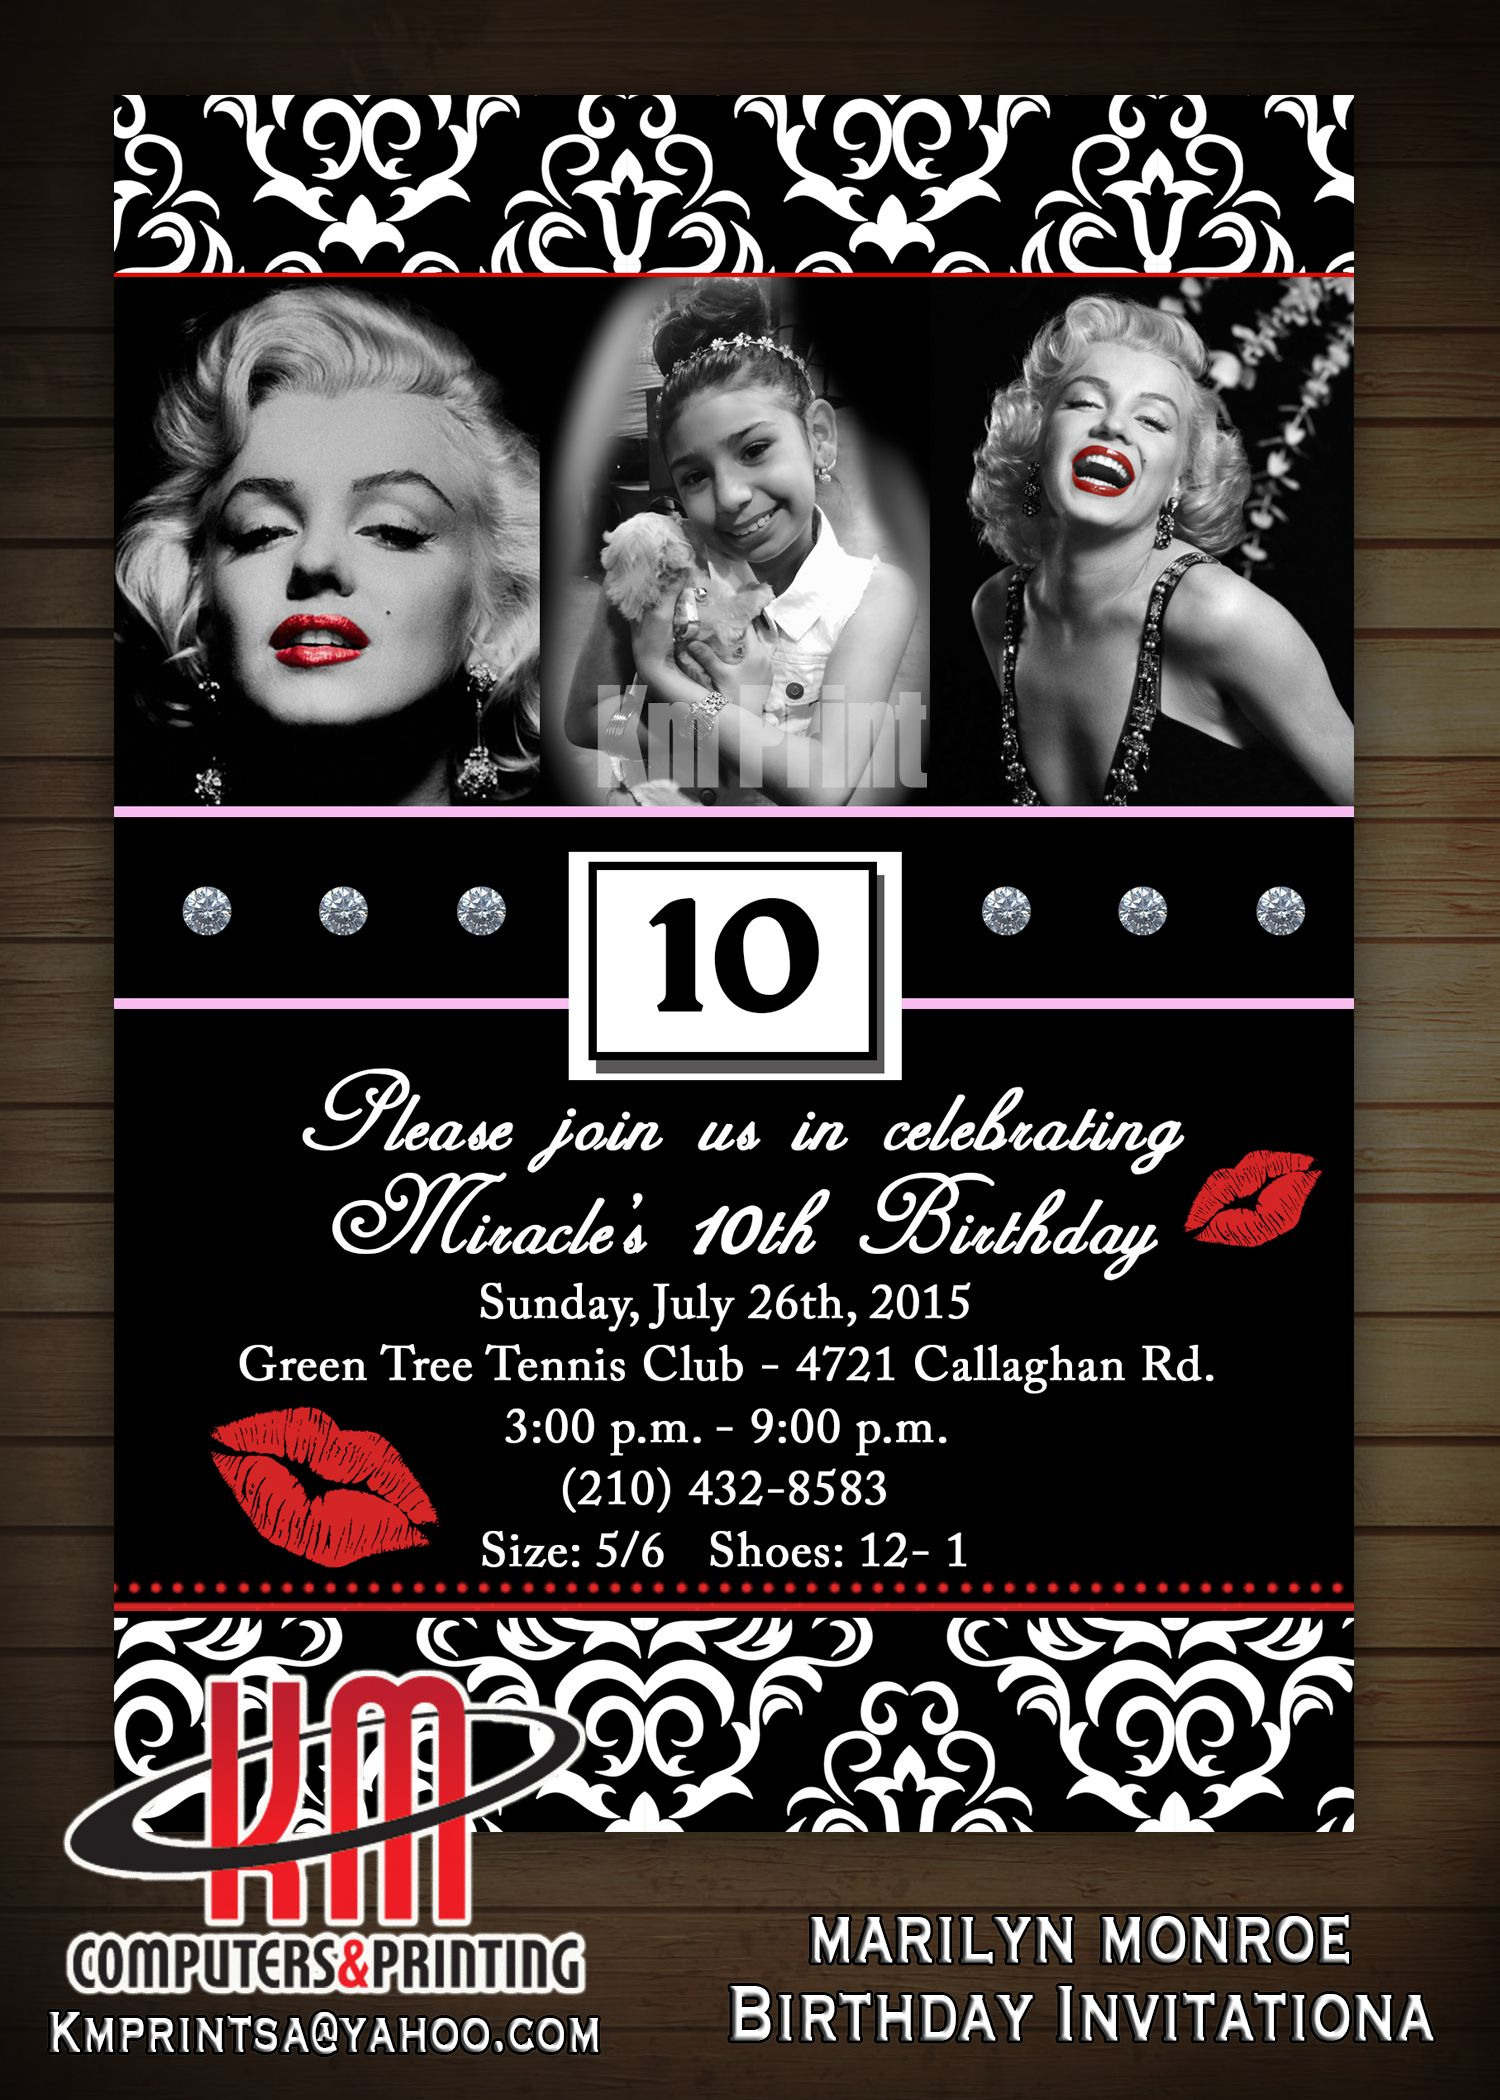 Marilyn Monroe Invitations - Printable - Hollywood, Movie, Marilyn ...